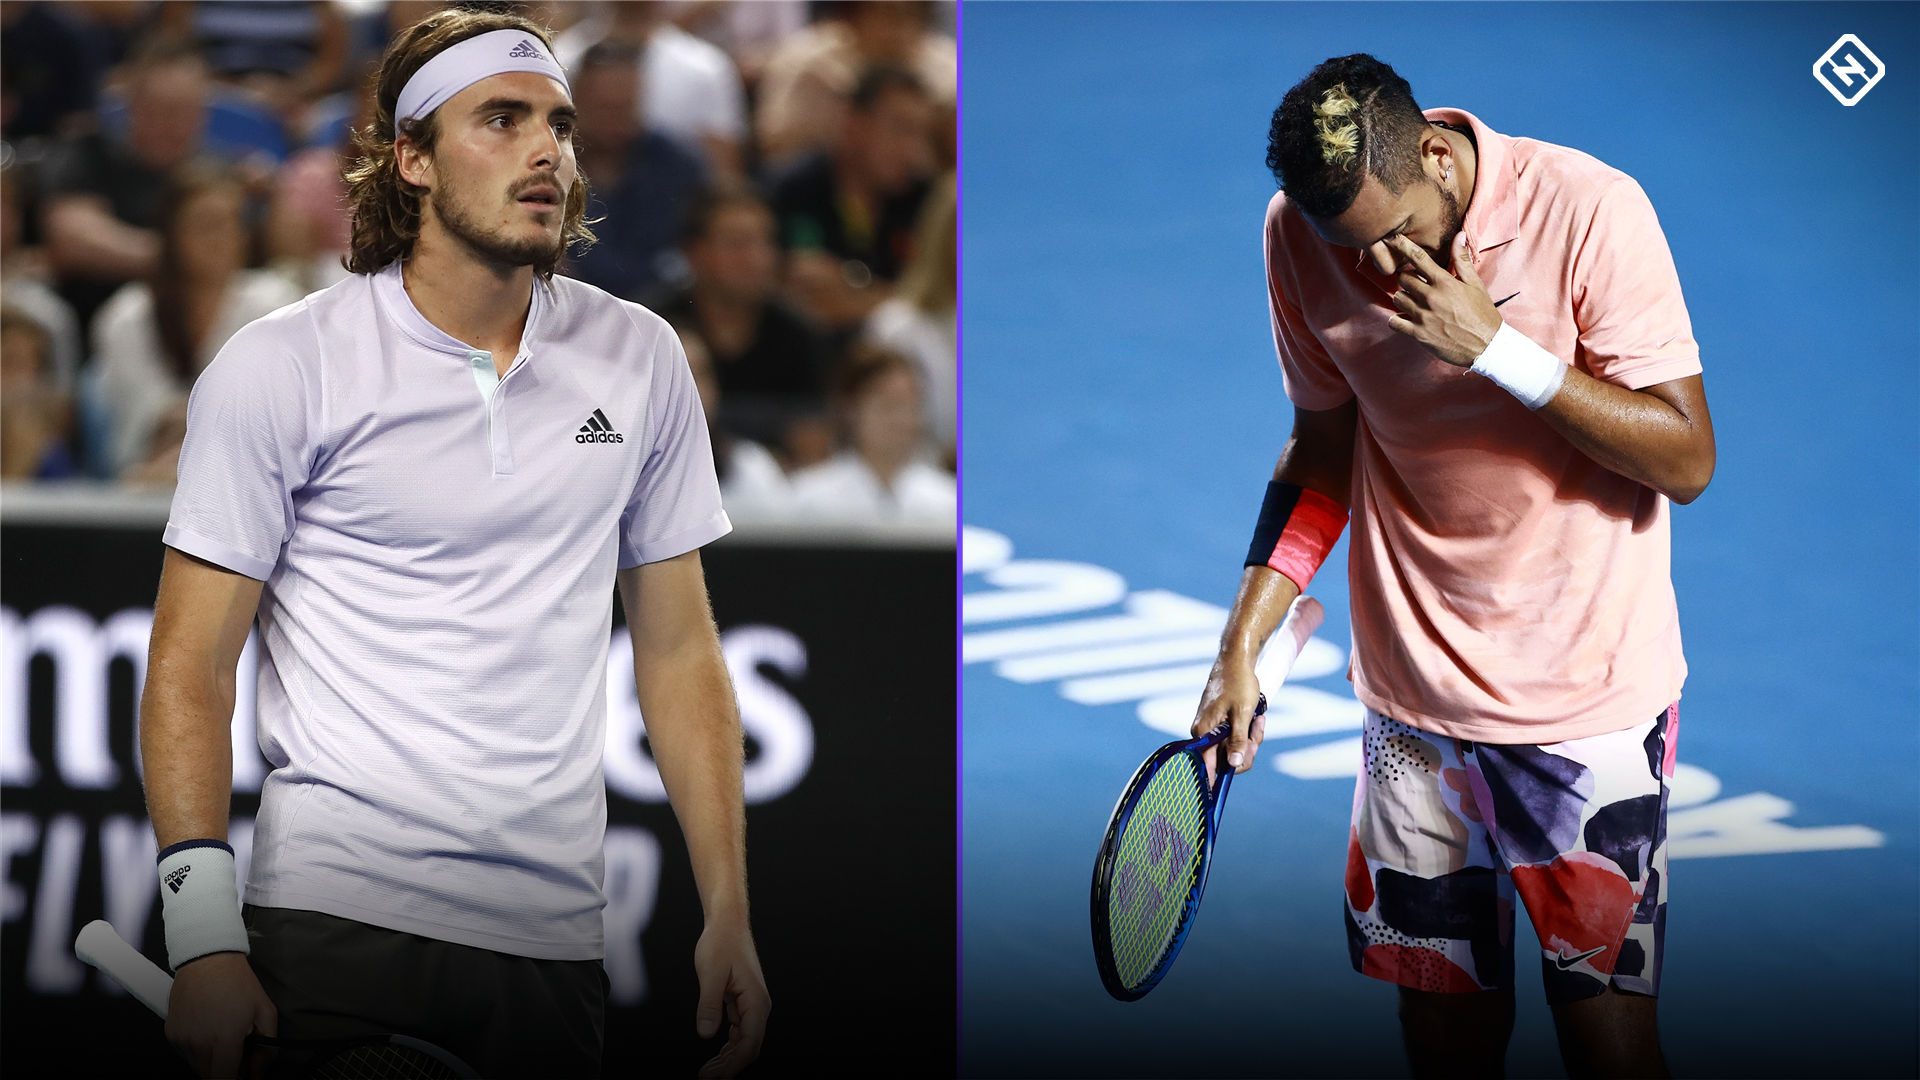 Nick Kyrgios Stitched Up By Greek Star Stefanos Tsitsipas After Phone Number Goes Viral On 25th Birthday Sporting News Australia